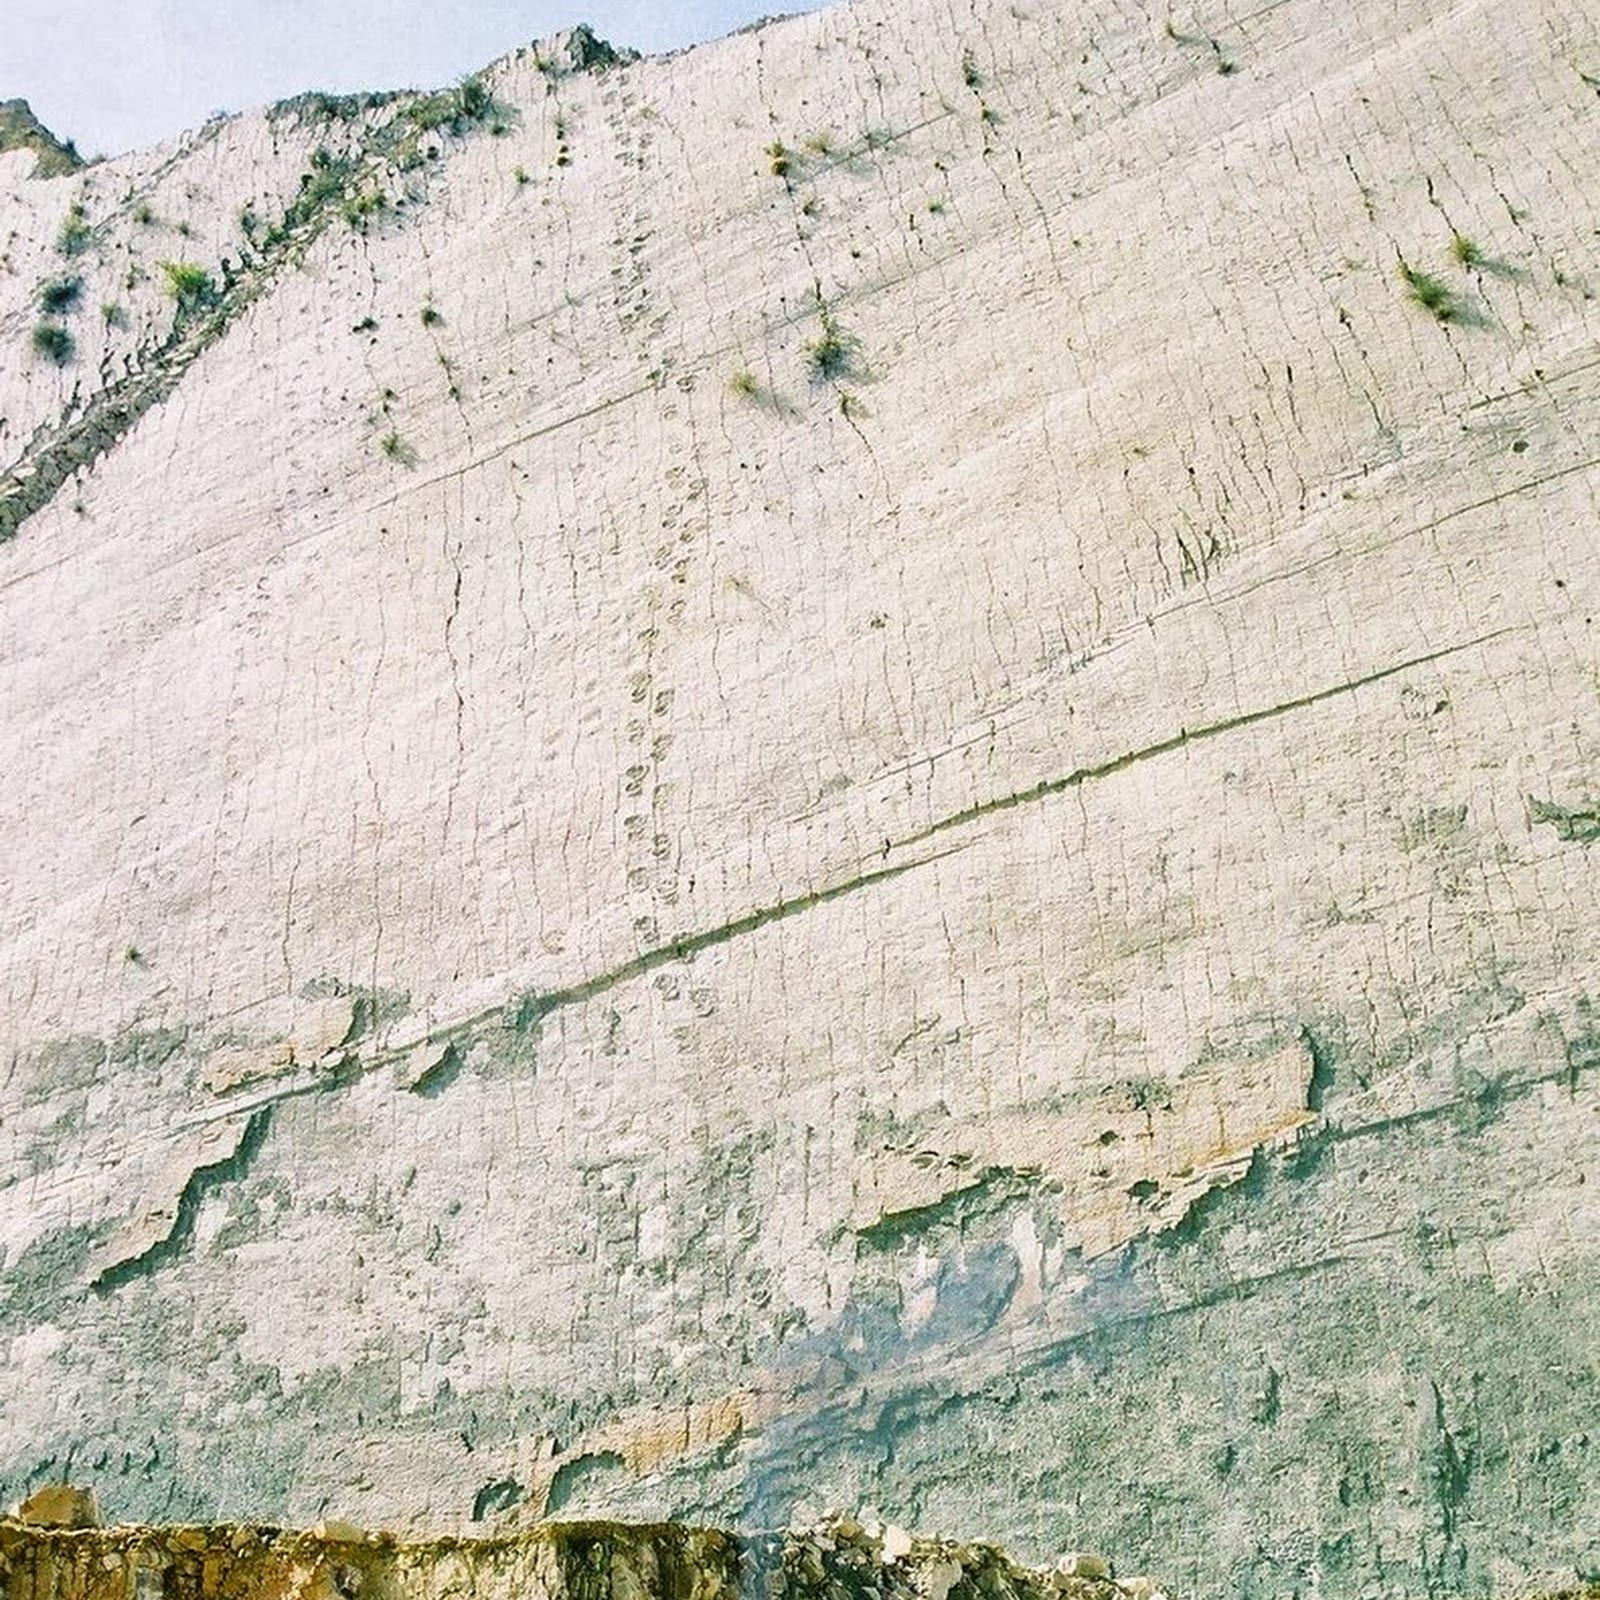 Cal Orcko: A 300 Feet Wall With Over 5,000 Dinosaur Footprints